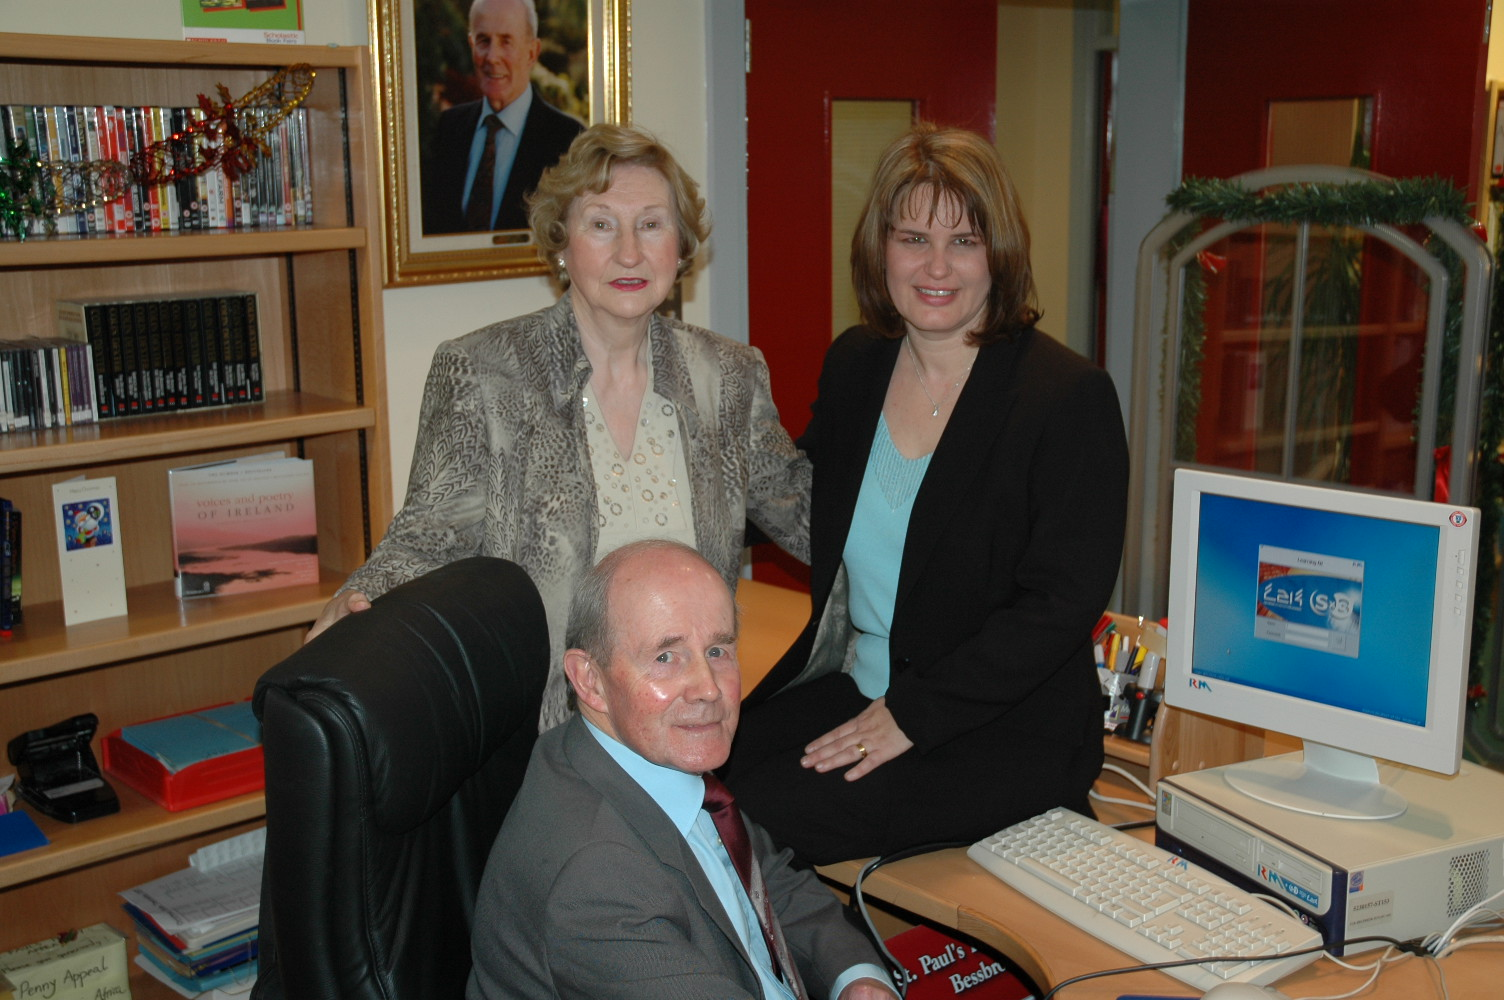 Pictured above are Mr Michael Warde, his wife Sheila and Mrs Michelle Morgan, our school librarian